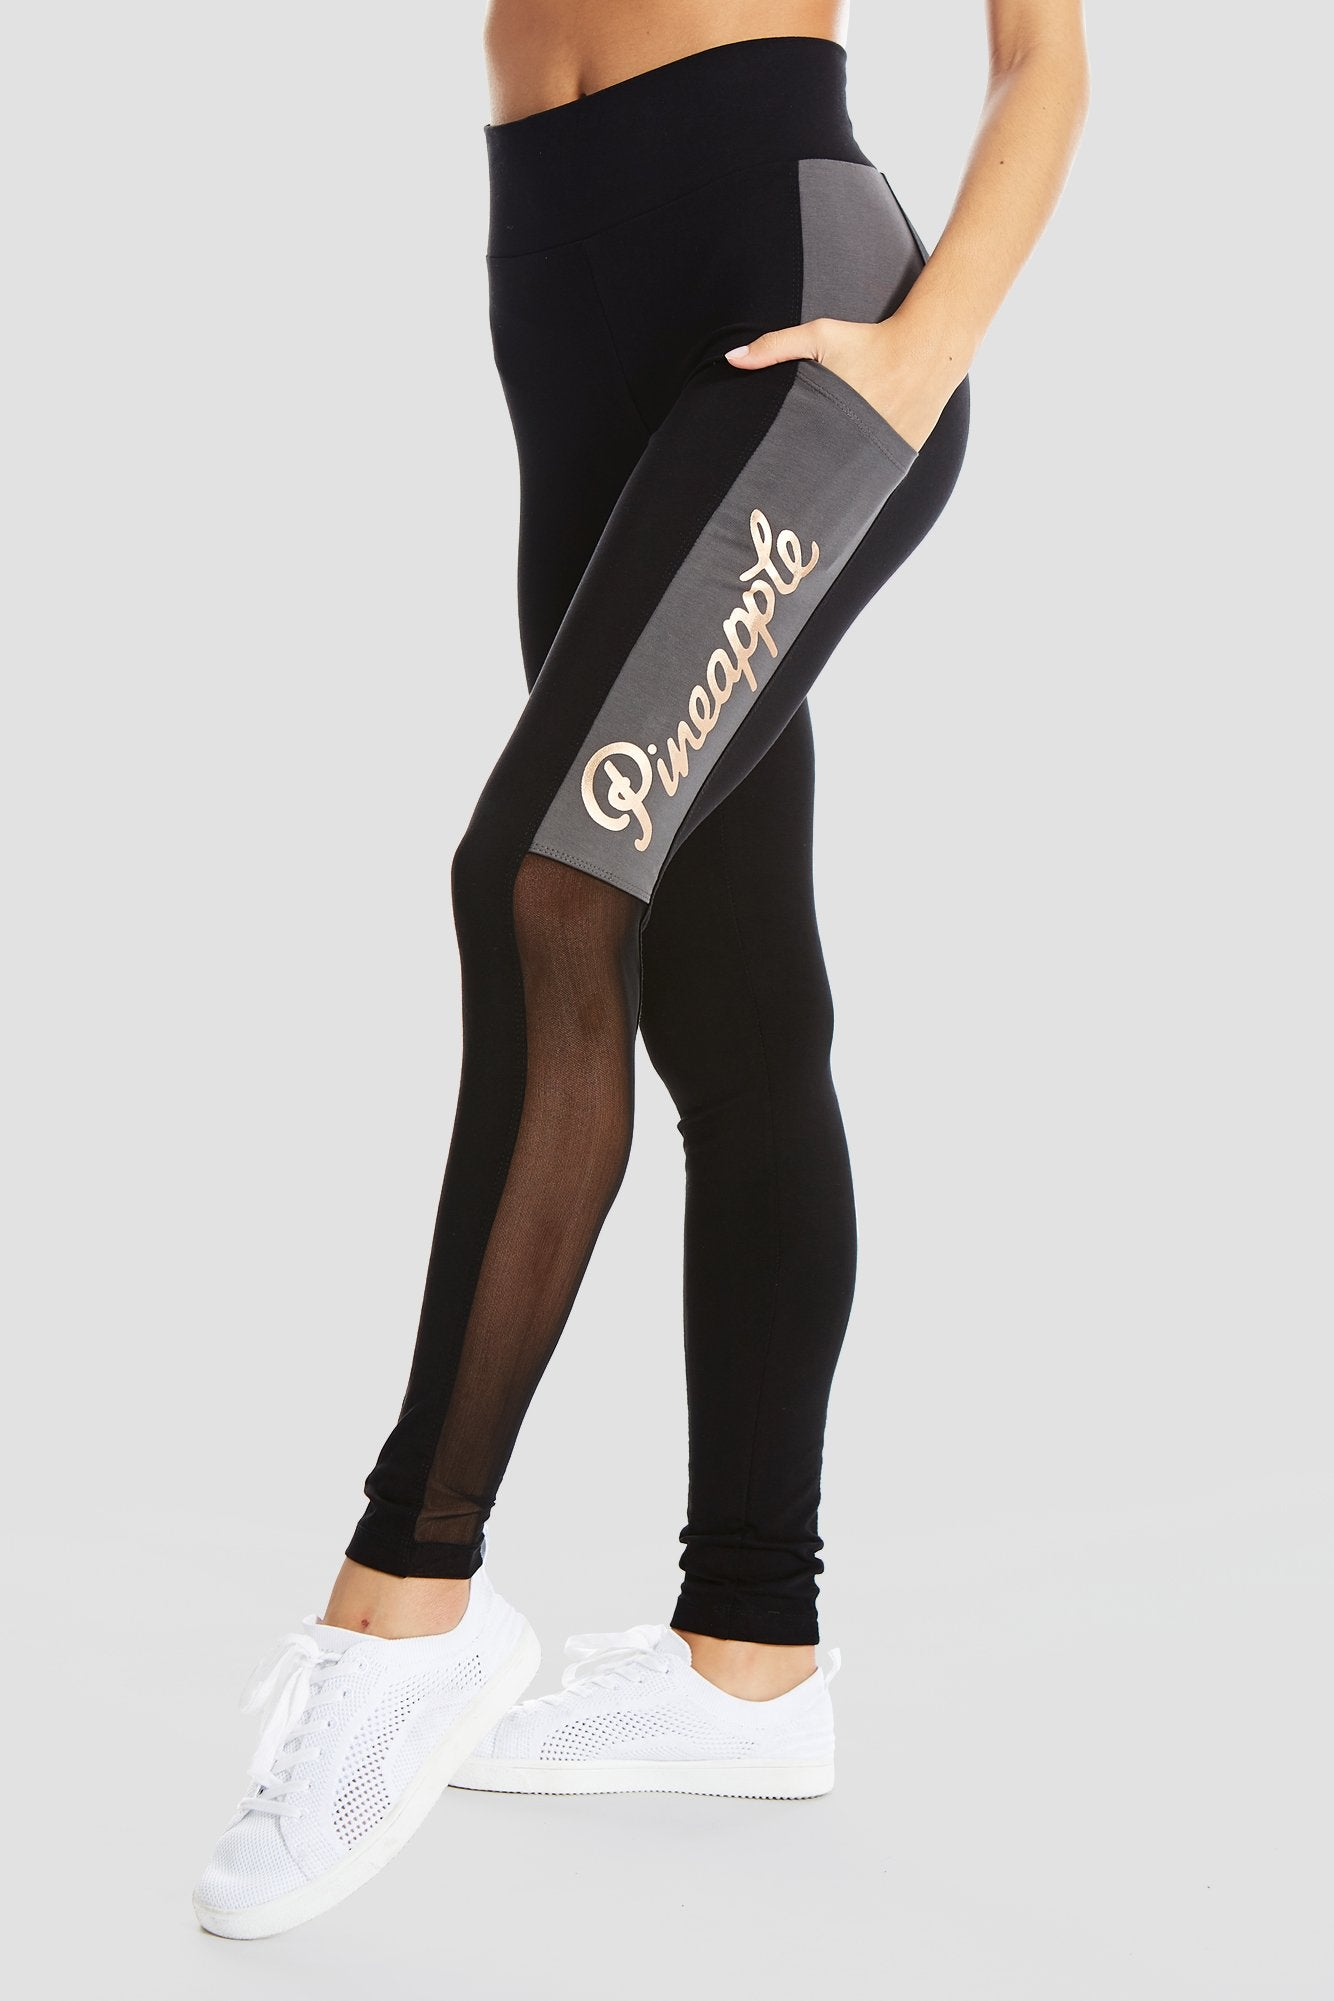 Pineapple Dancewear Women's Black Pocket Leggings